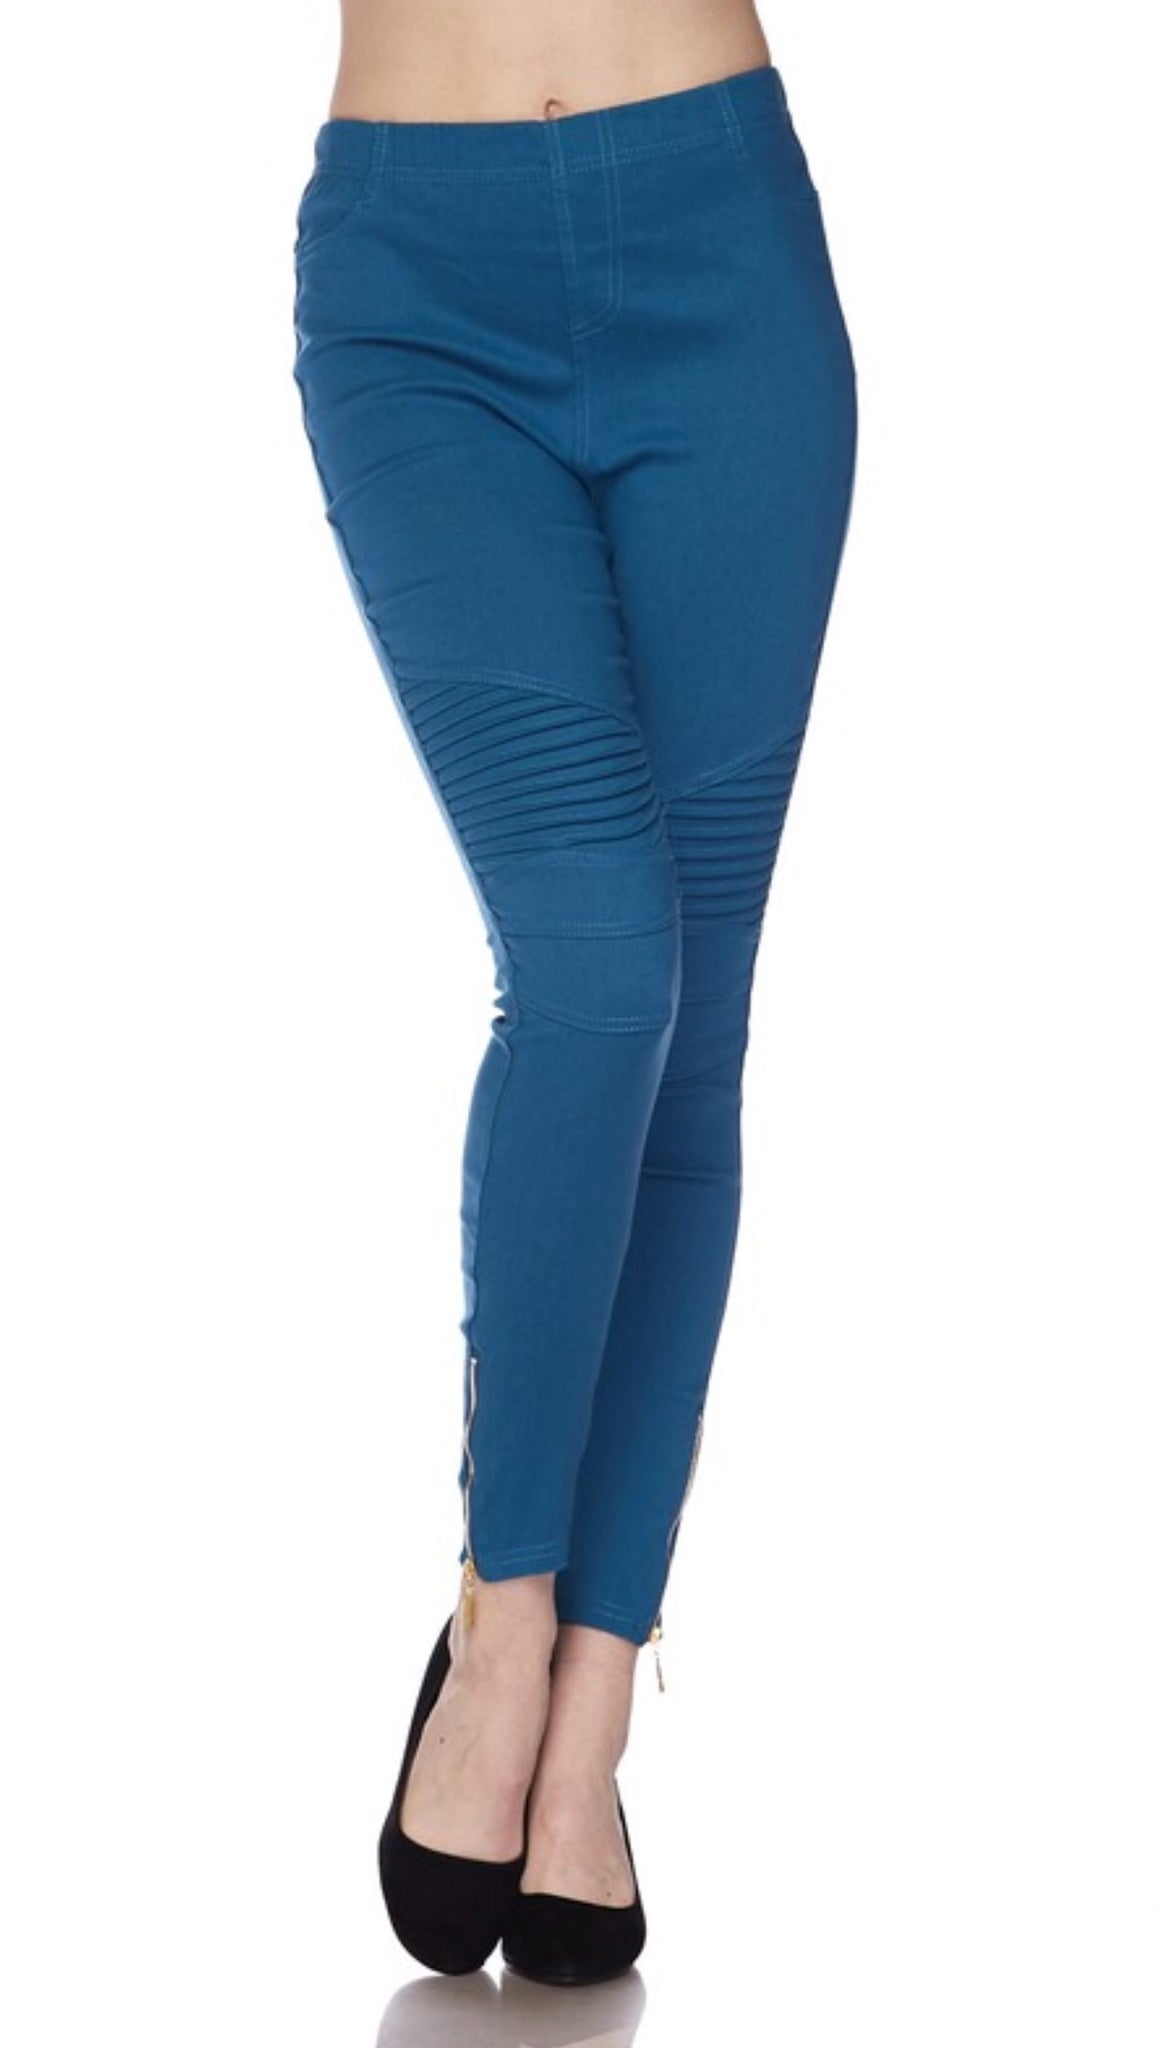 Teal Glam Moto Leggings with Zipper